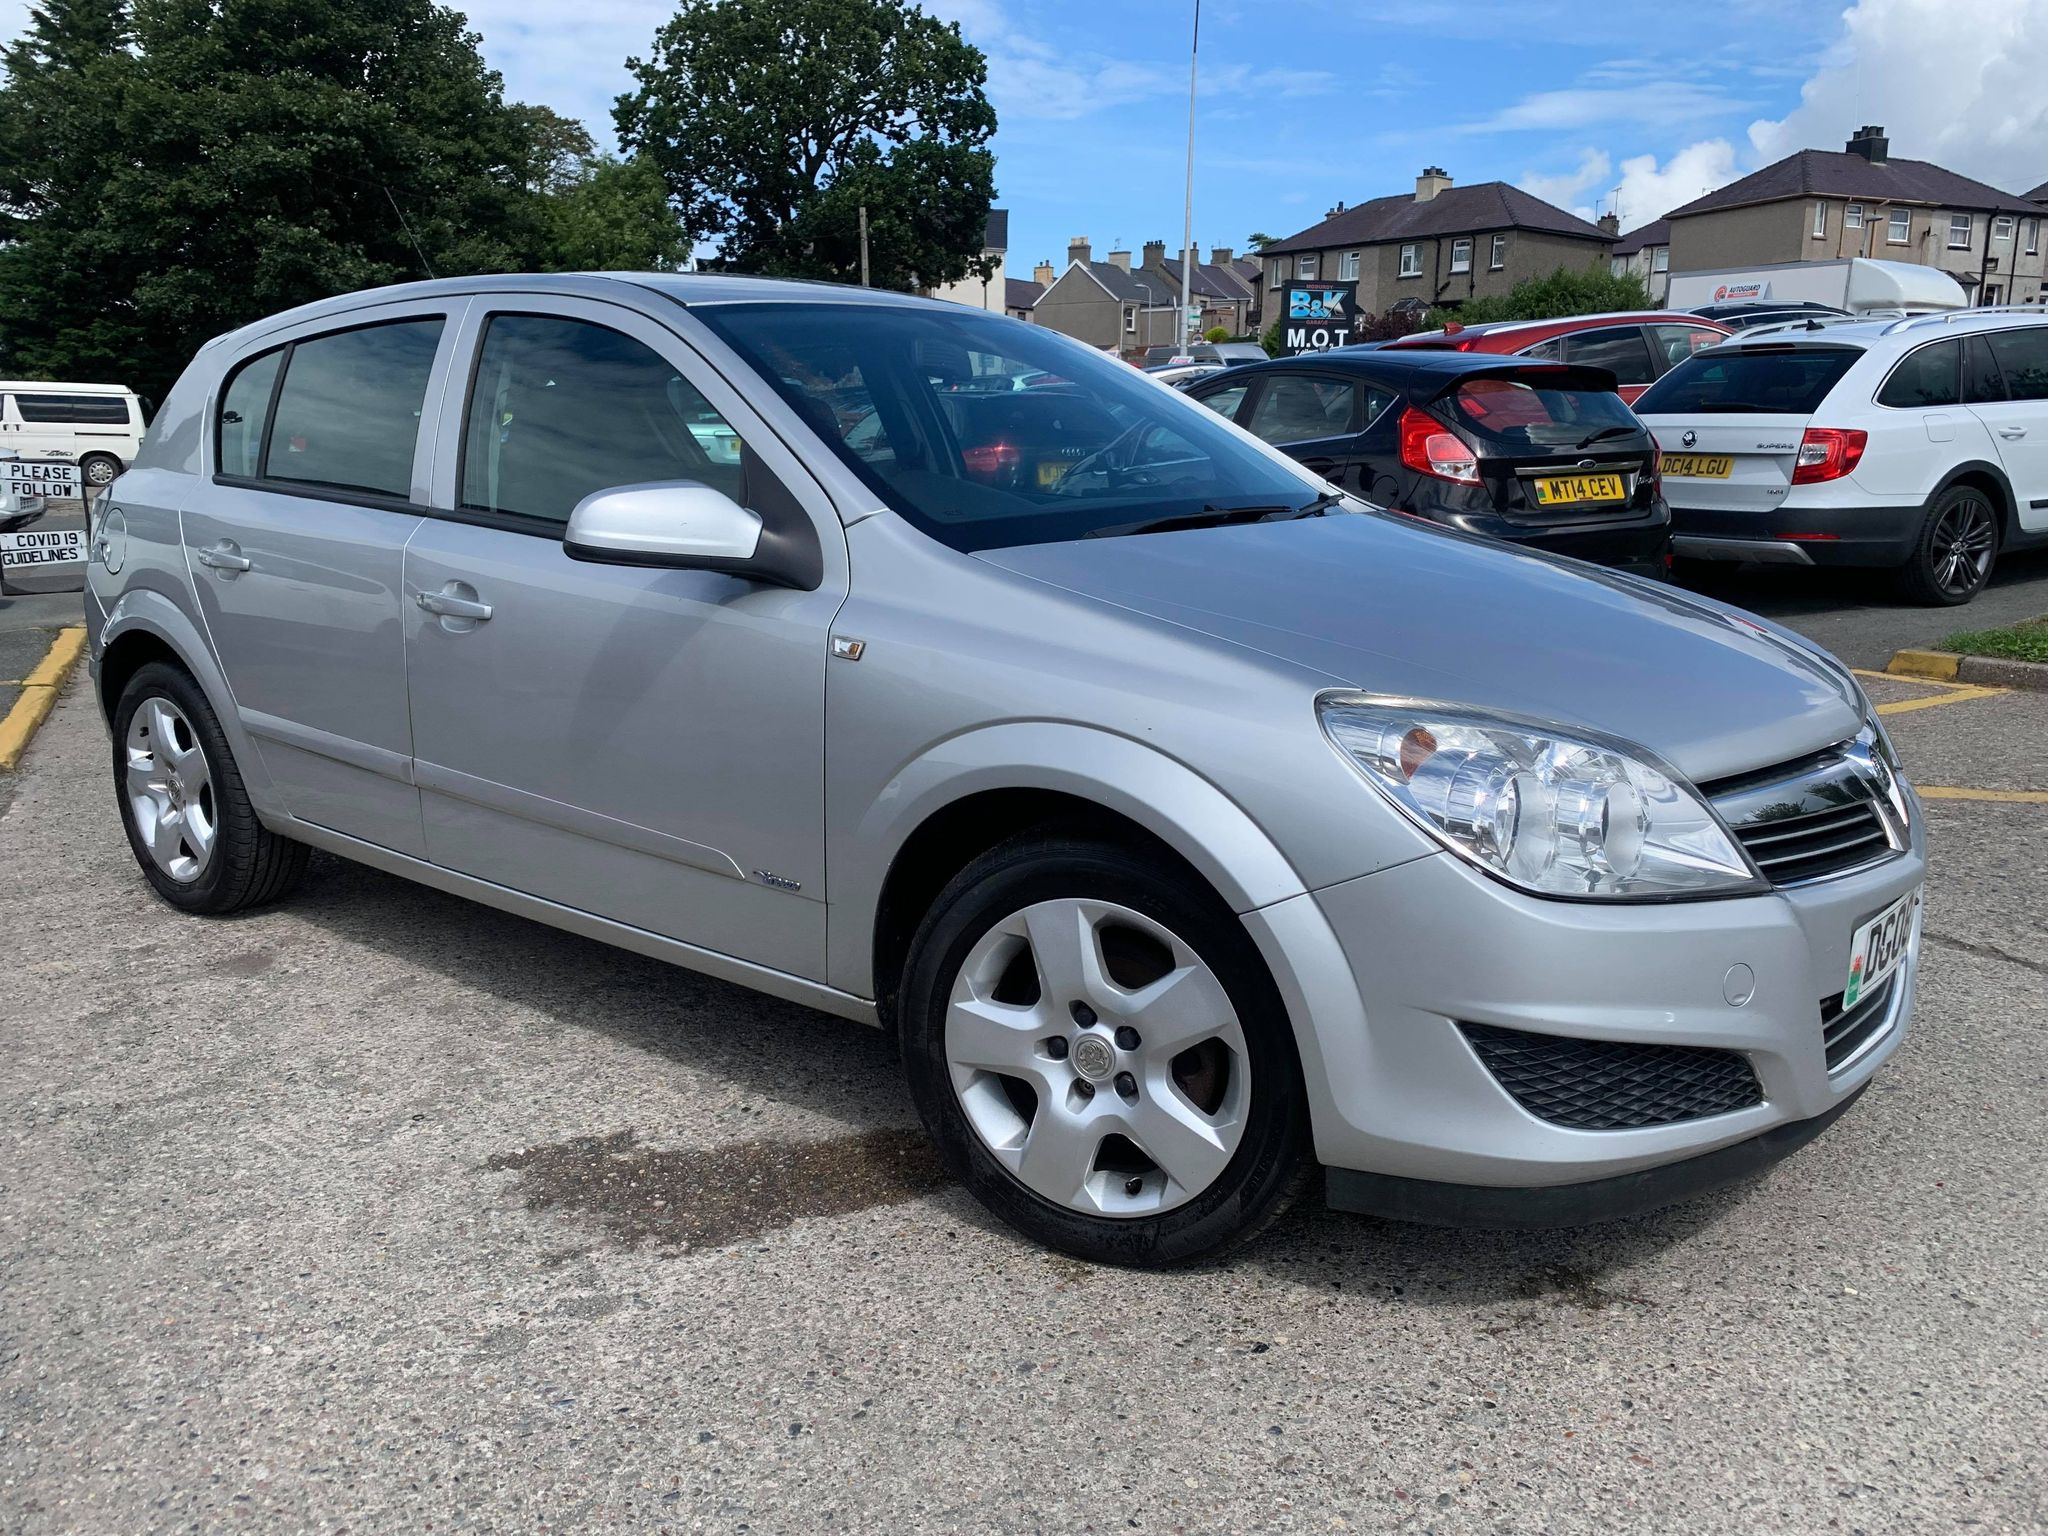 VAUXHALL ASTRA END OF LINE